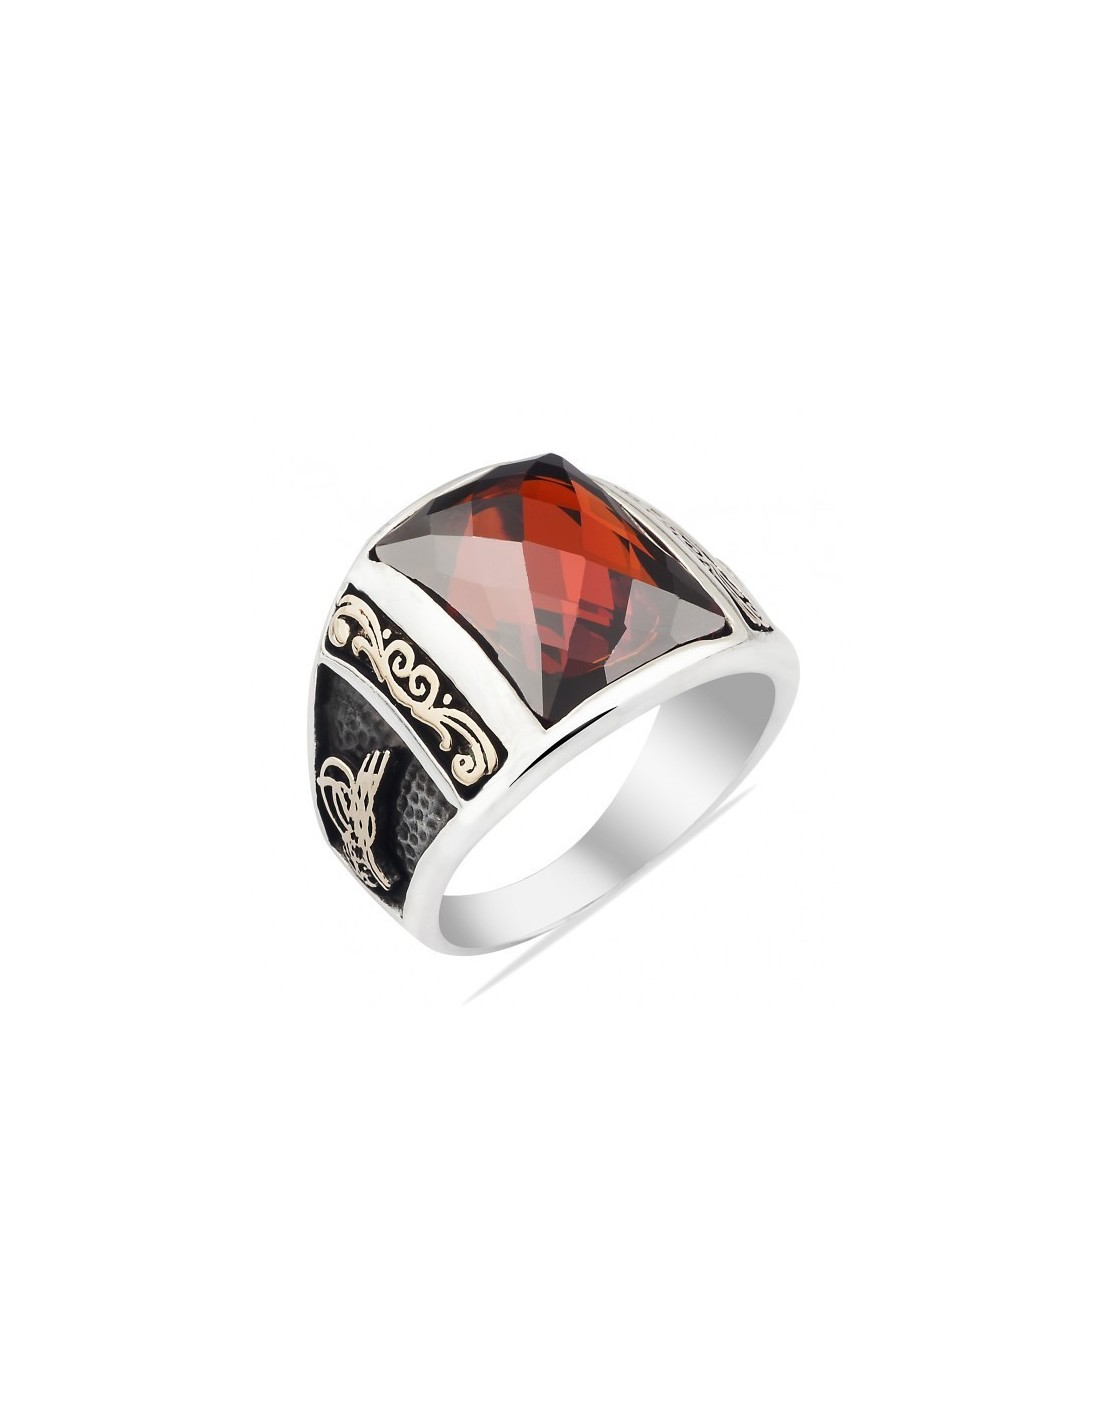 mens ring in sterling silver from turkstyleshop silver jewelry